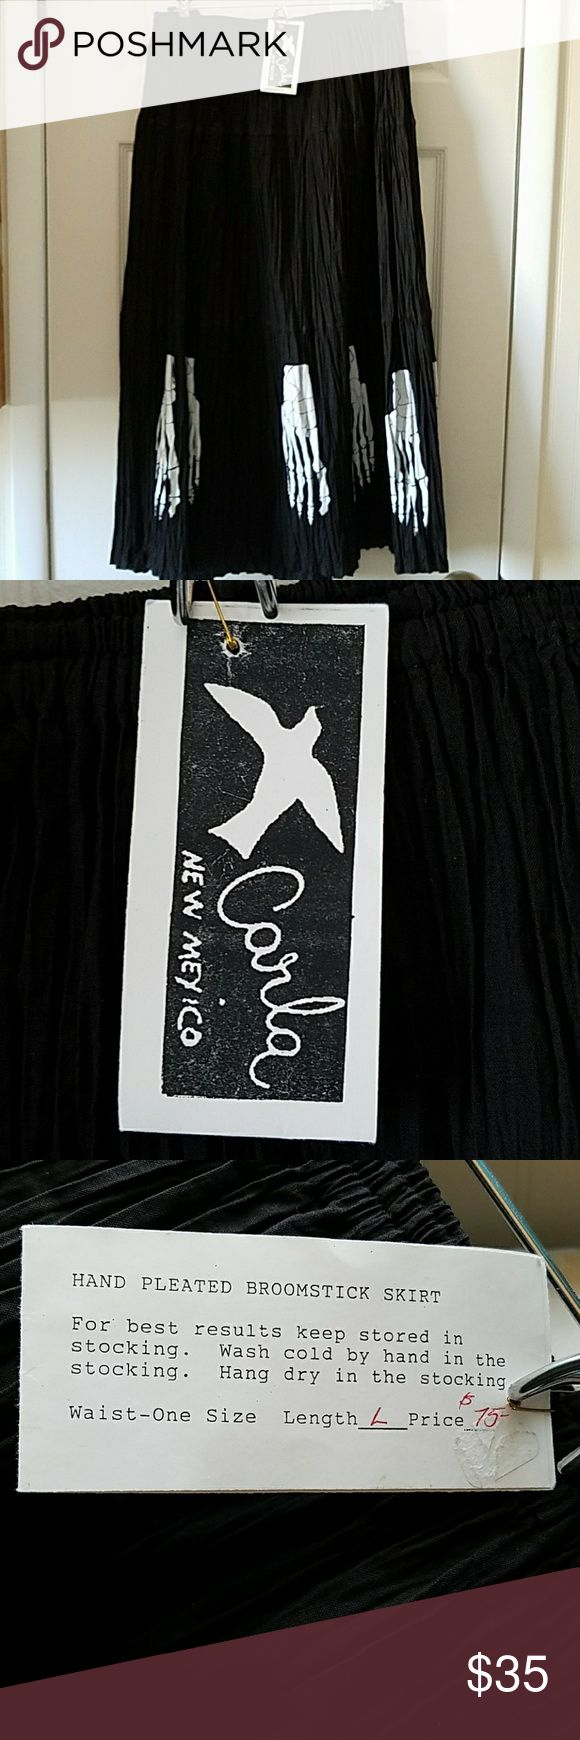 Ltd. Edition Carla of New Mexico Broomstick Skirt! Black cotton skirt with silk screened skeleton feet, so unique, new with tags! Be noticed in this fabulous skirt! It is one size fits all but my opinion is Large to X Large. Perfect with boots or sandals! Carla of New Mexico Skirts Maxi